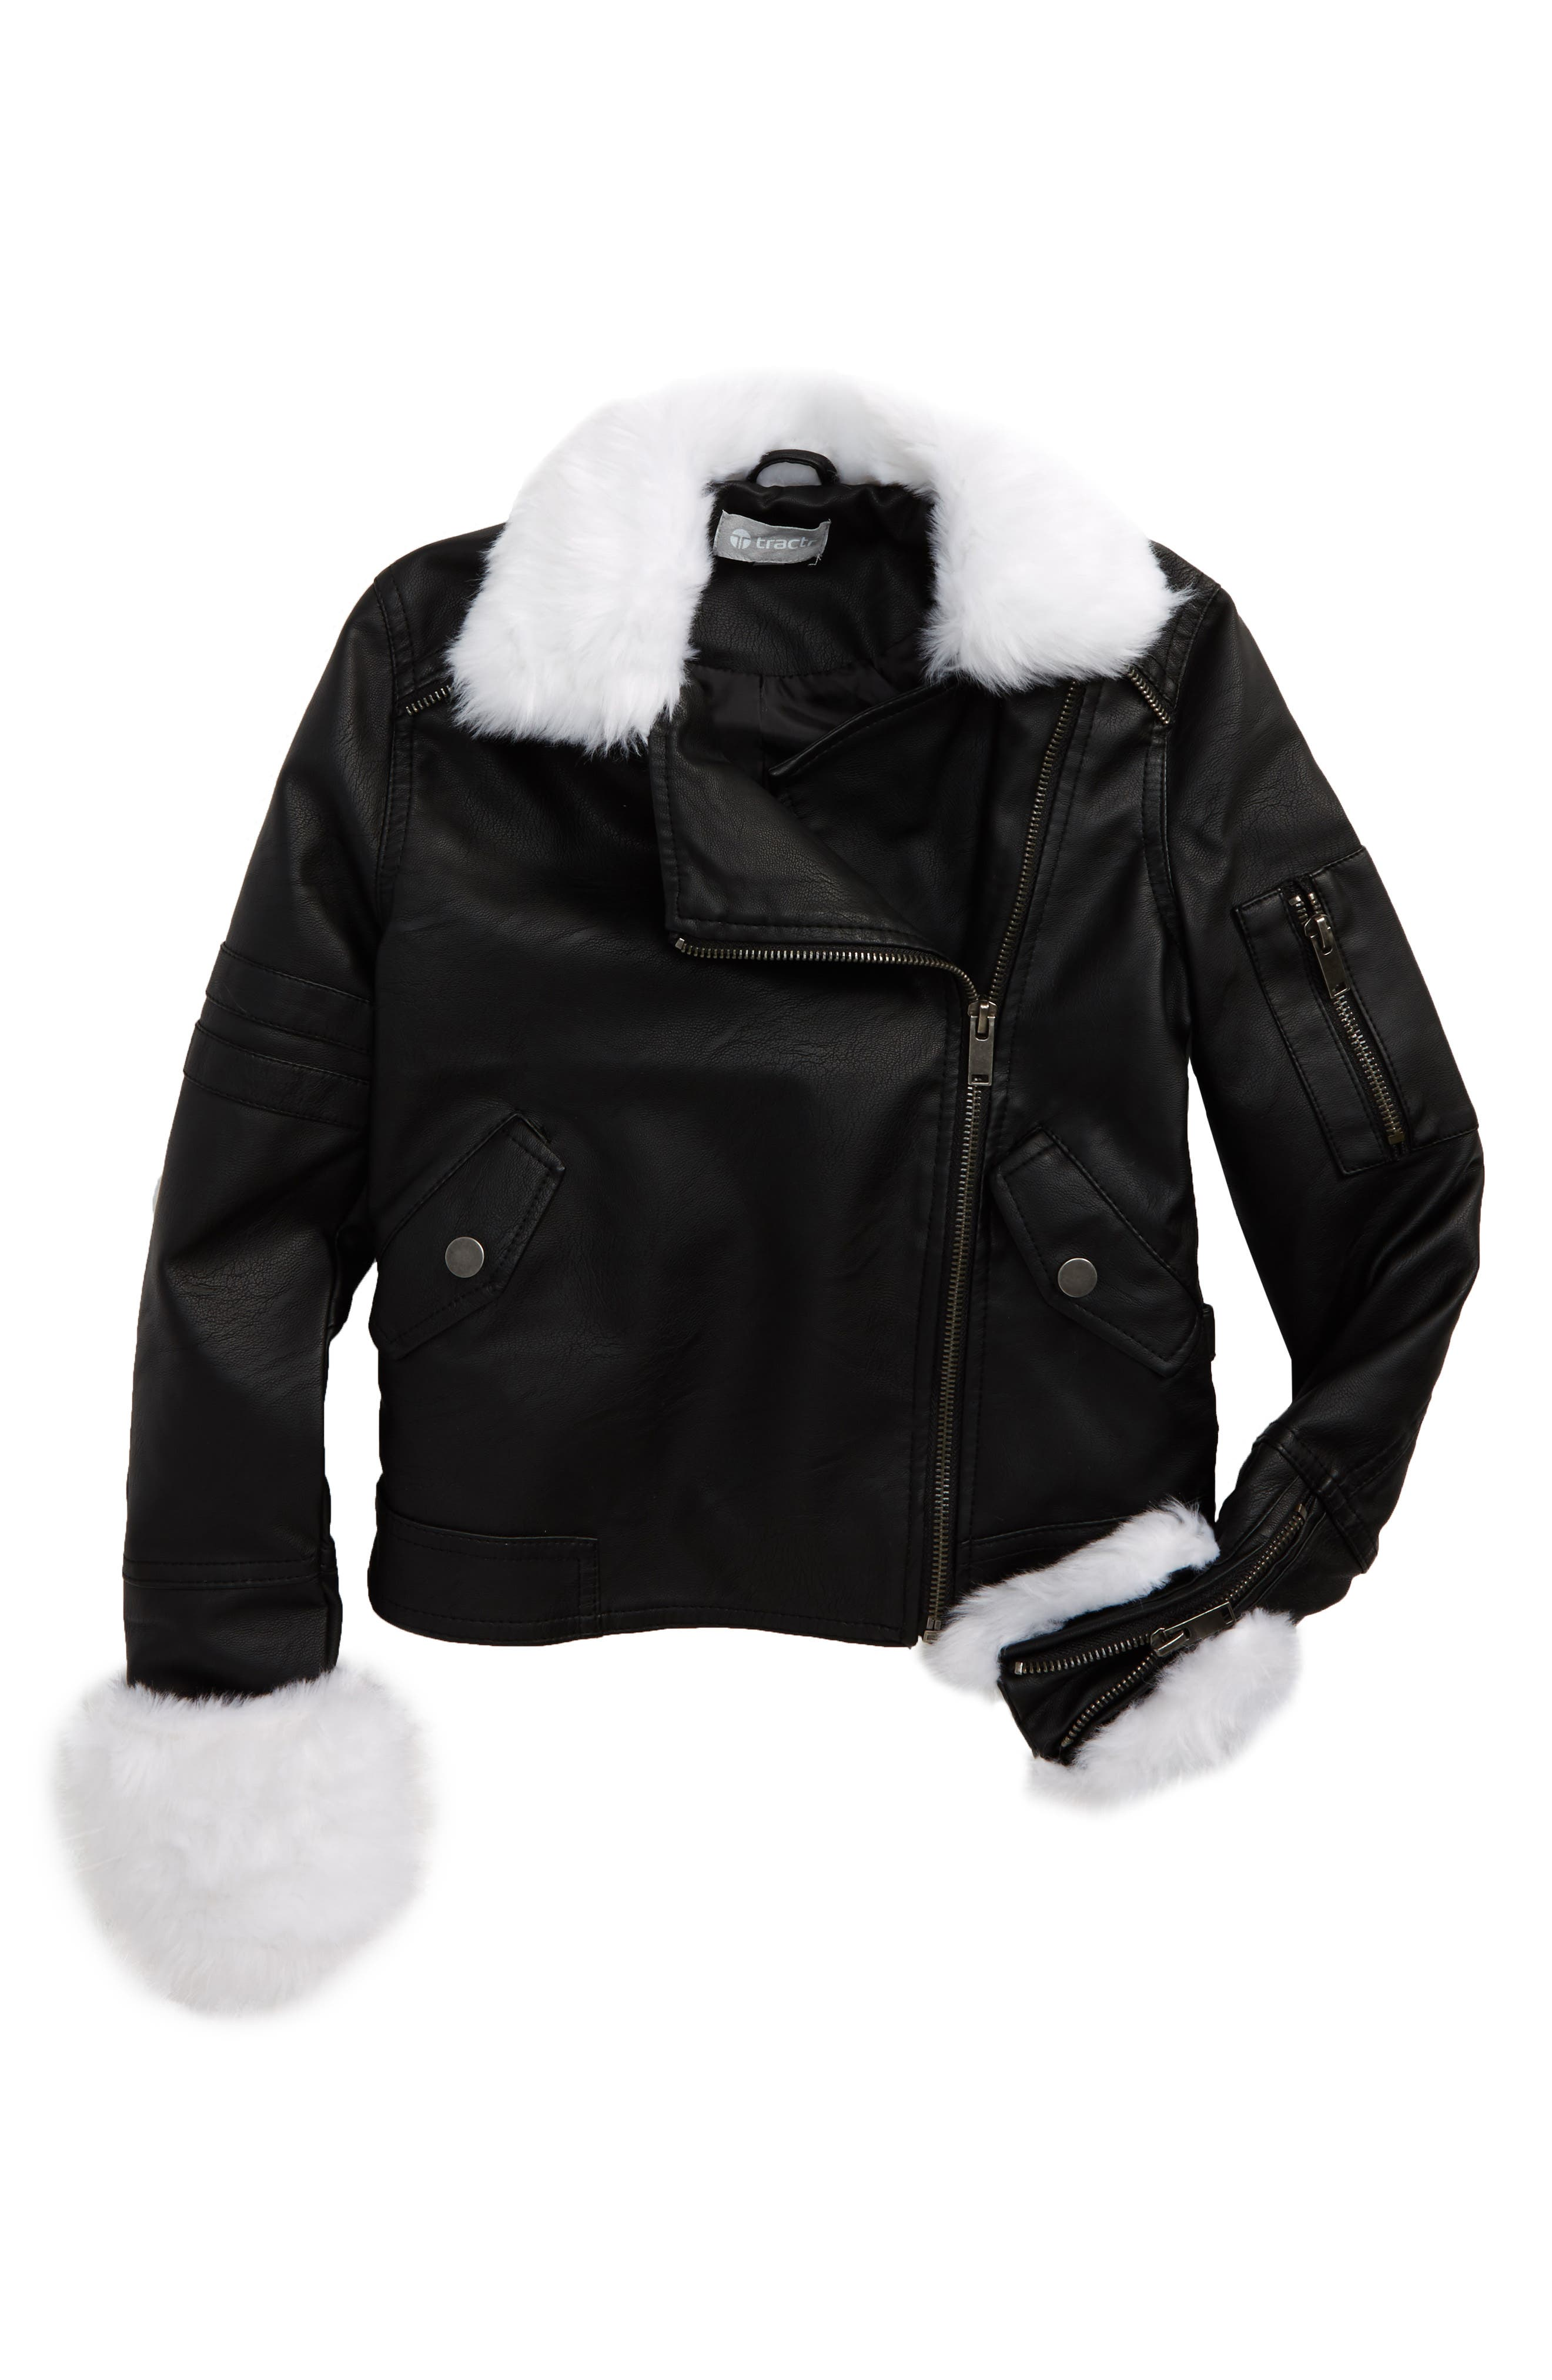 Tractr Faux Leather Bomber Jacket with Faux Fur Trim (Big Girls)